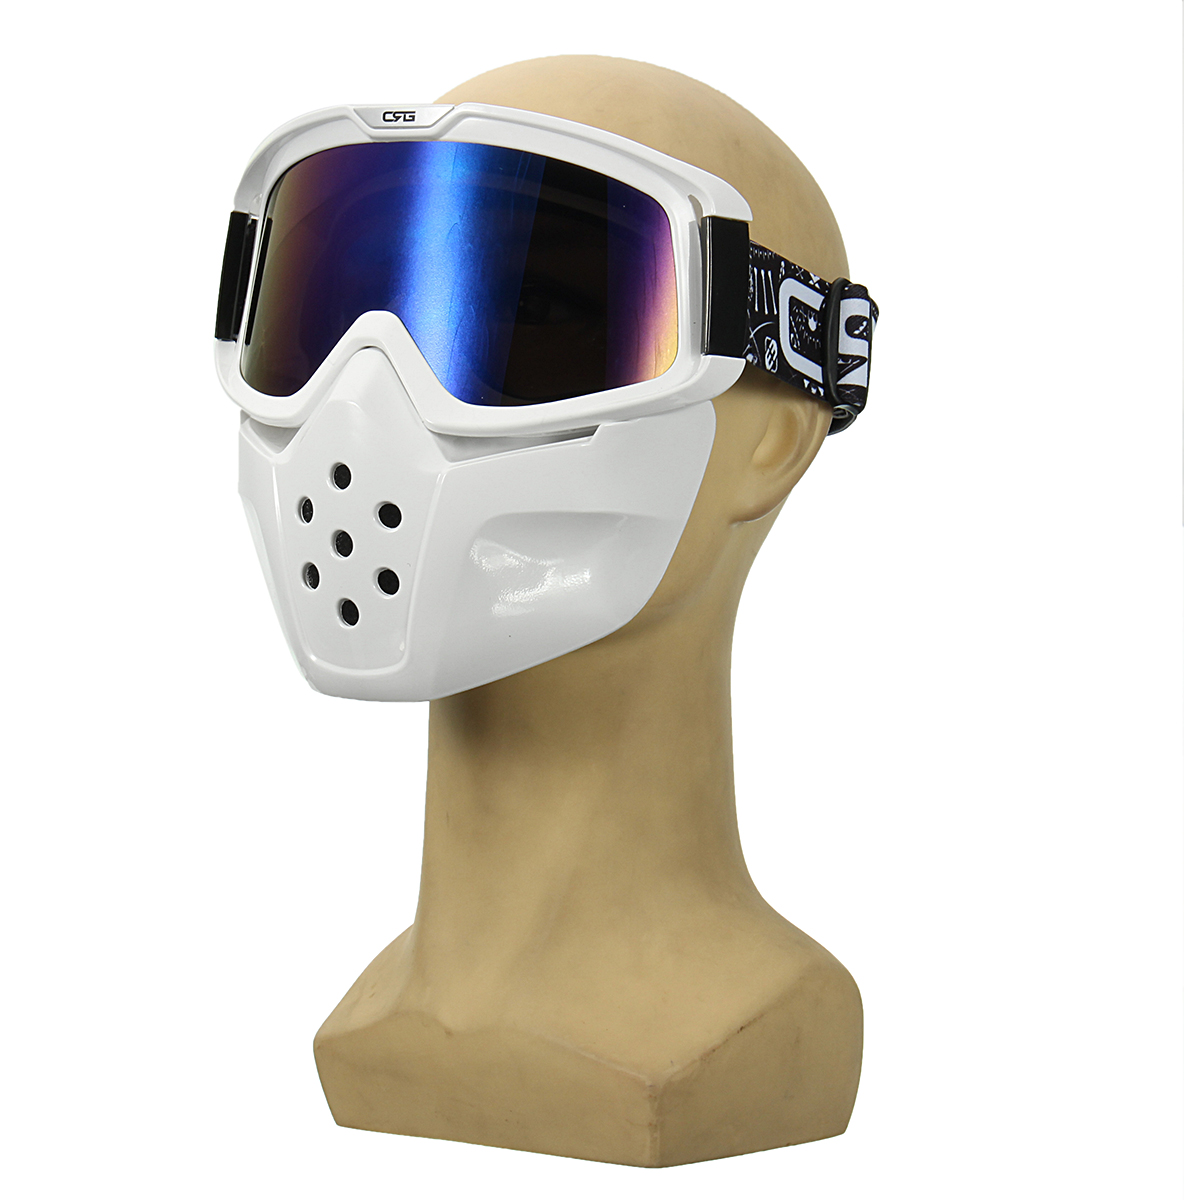 Detachable Goggles Face Mask Helmet Modular Shield Motorcycle Riding Blue Lens